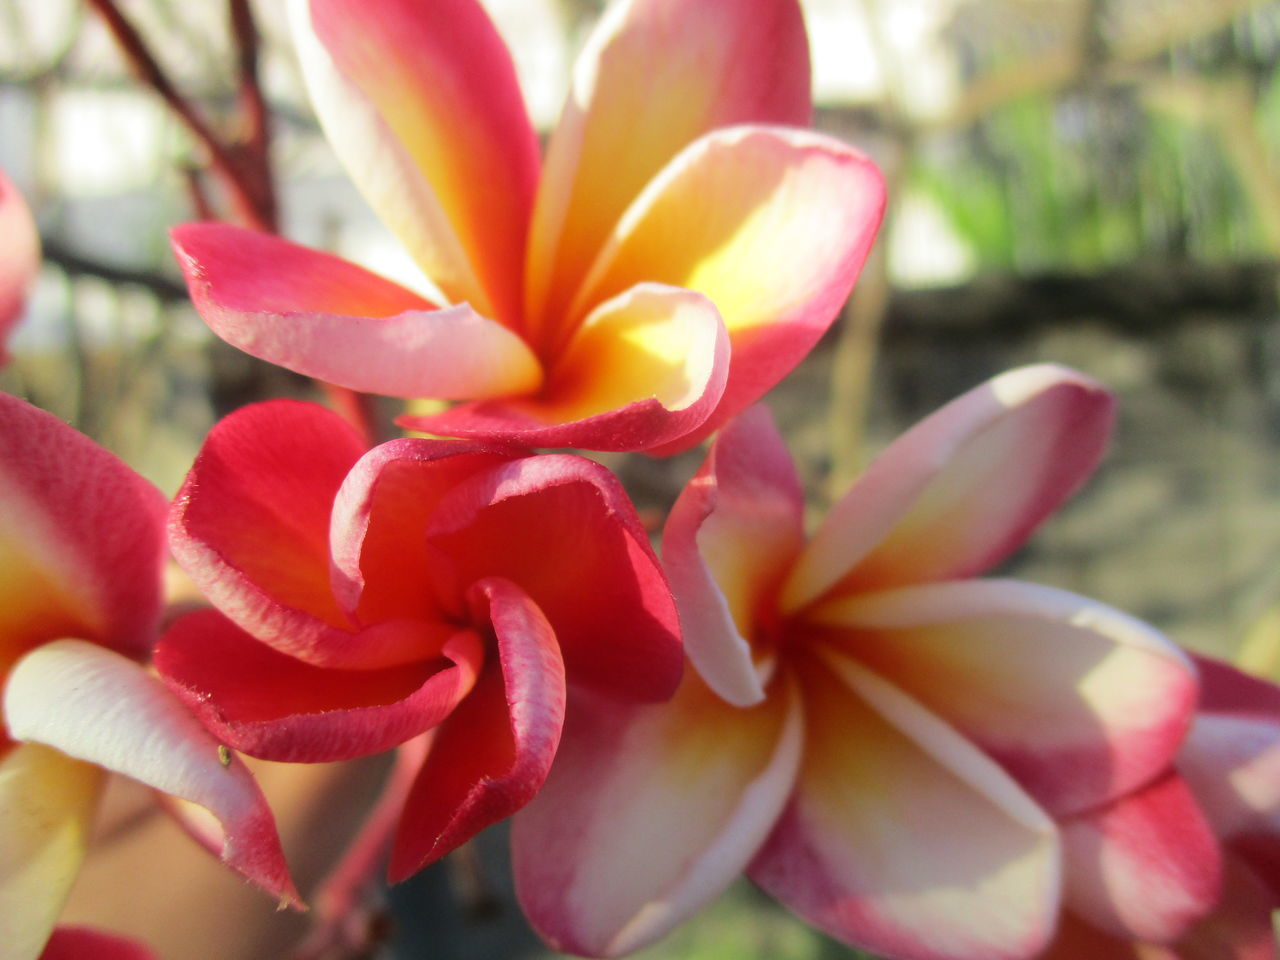 flower, petal, nature, beauty in nature, flower head, fragility, freshness, growth, blooming, close-up, no people, day, outdoors, red, plant, frangipani